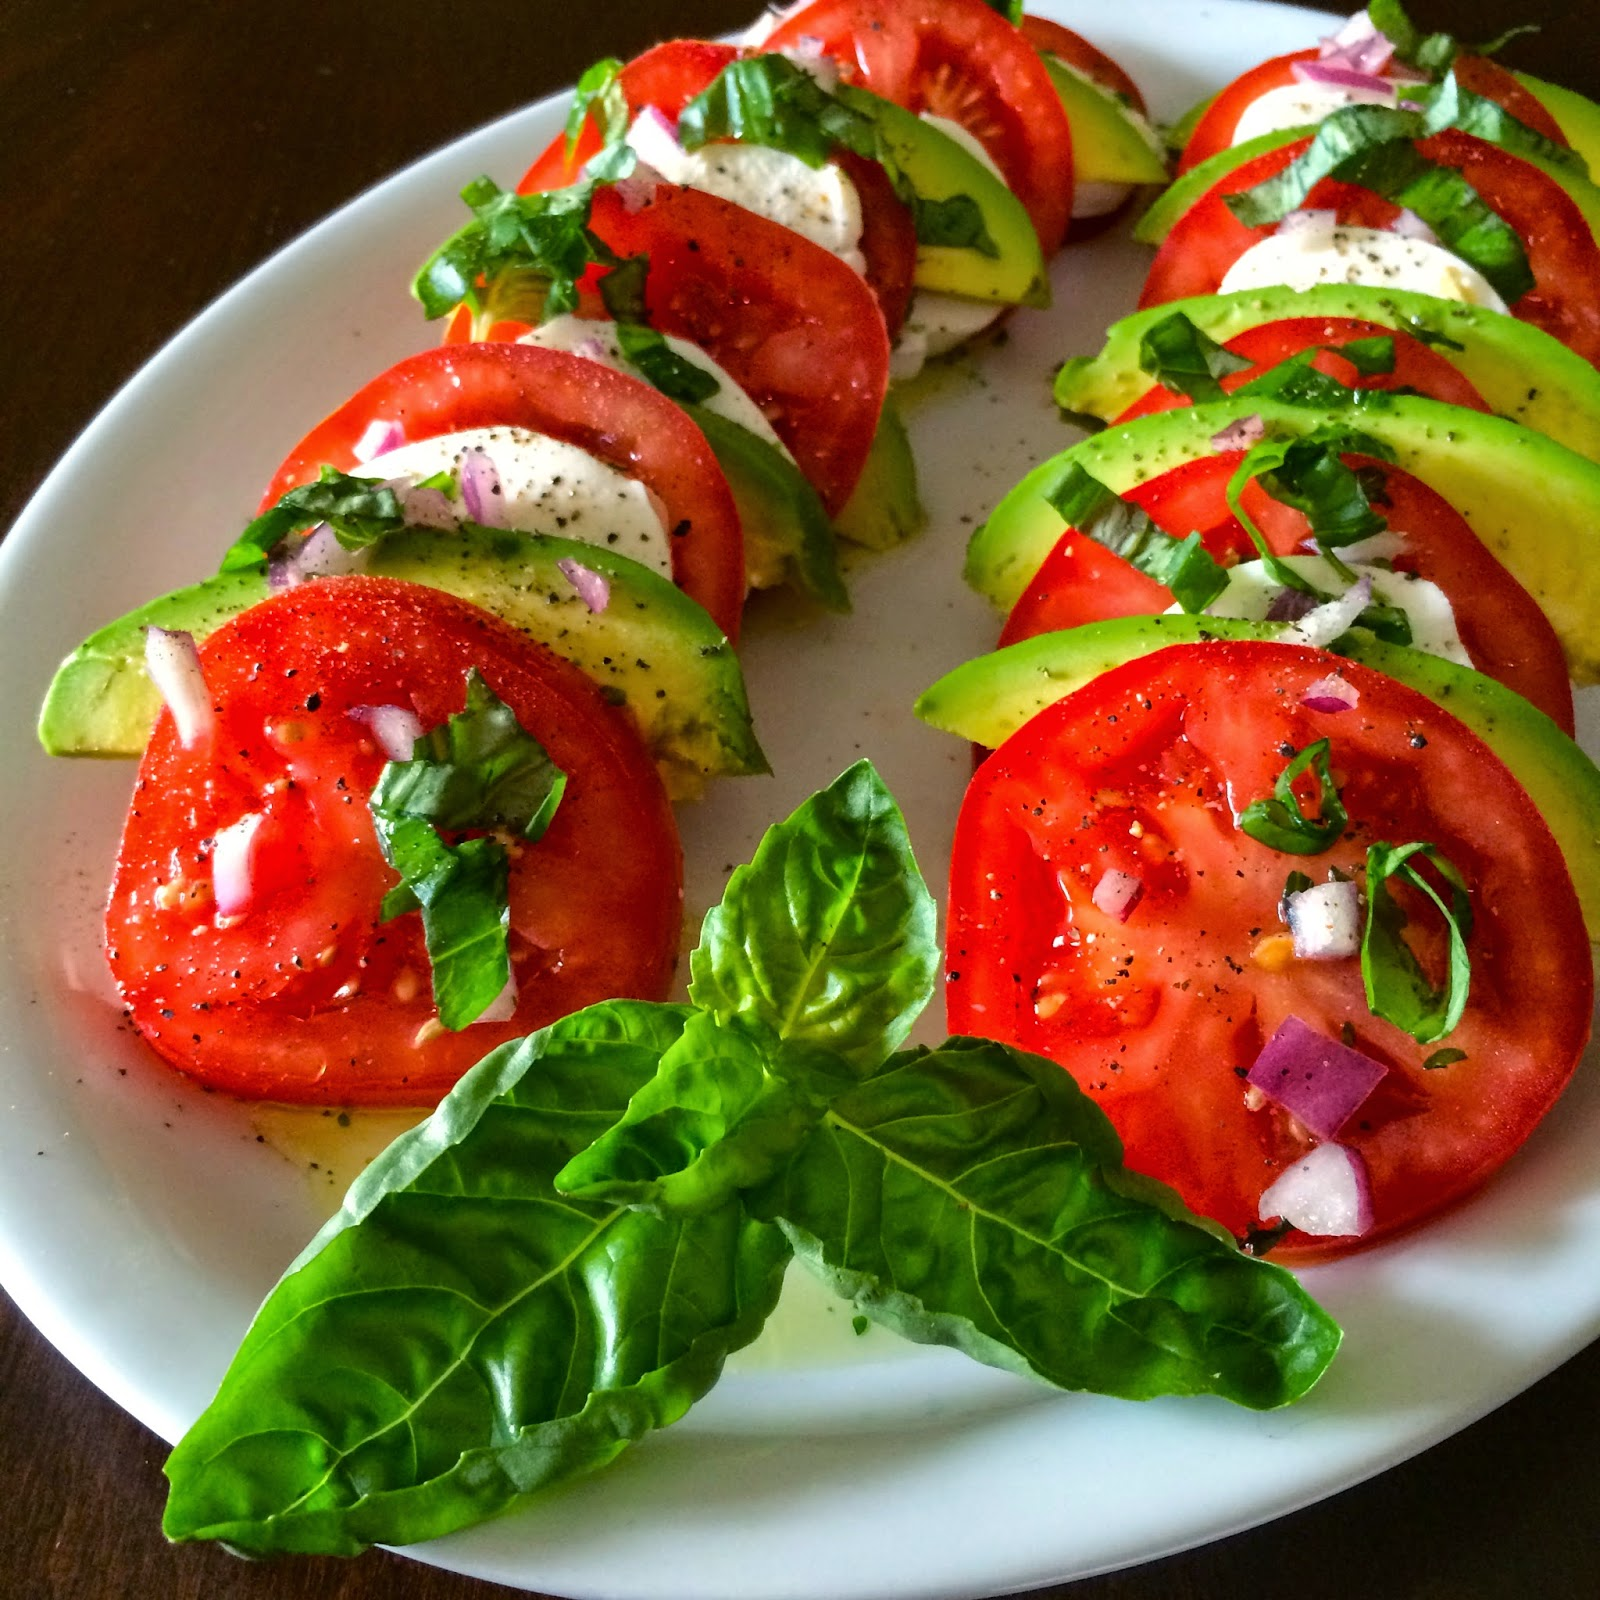 Food Impressions: Avocado Caprese Salad